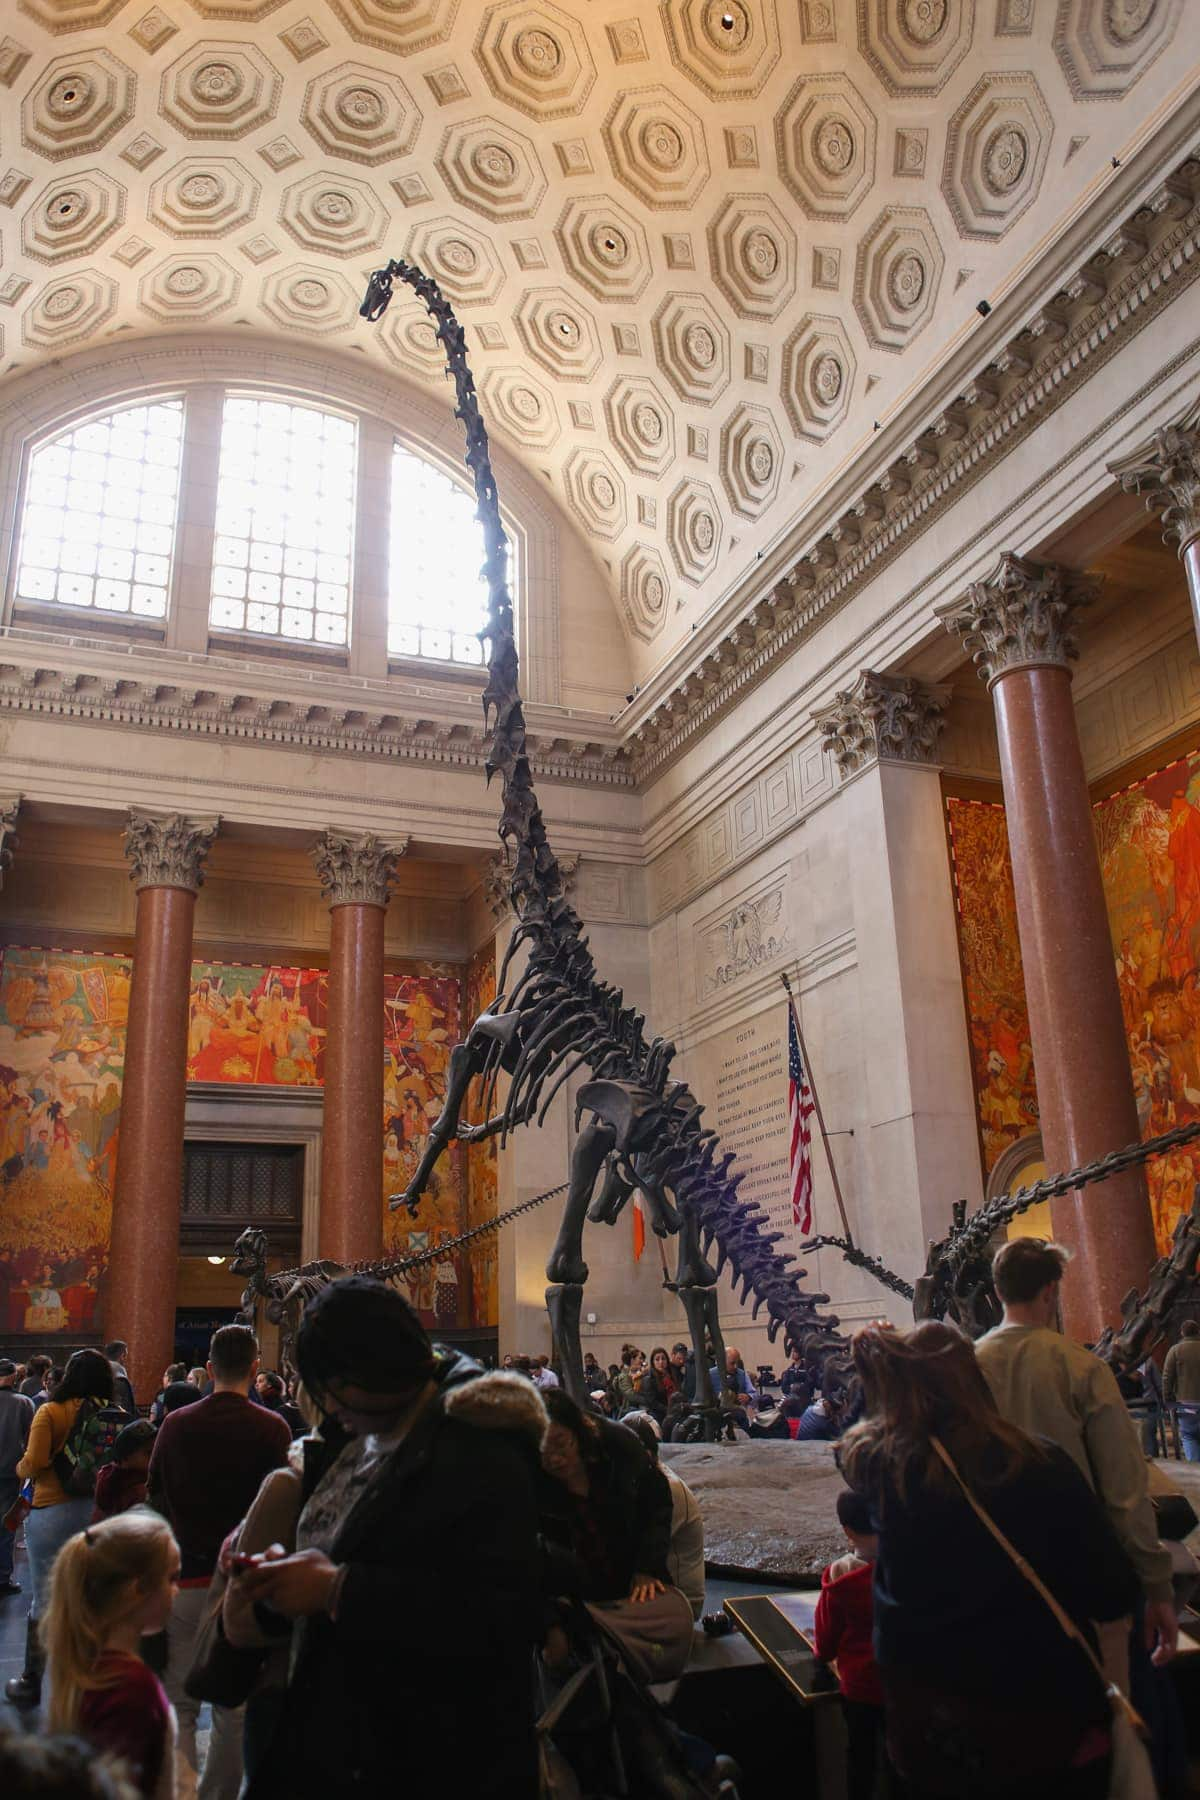 Inside the American Museum of Natural History